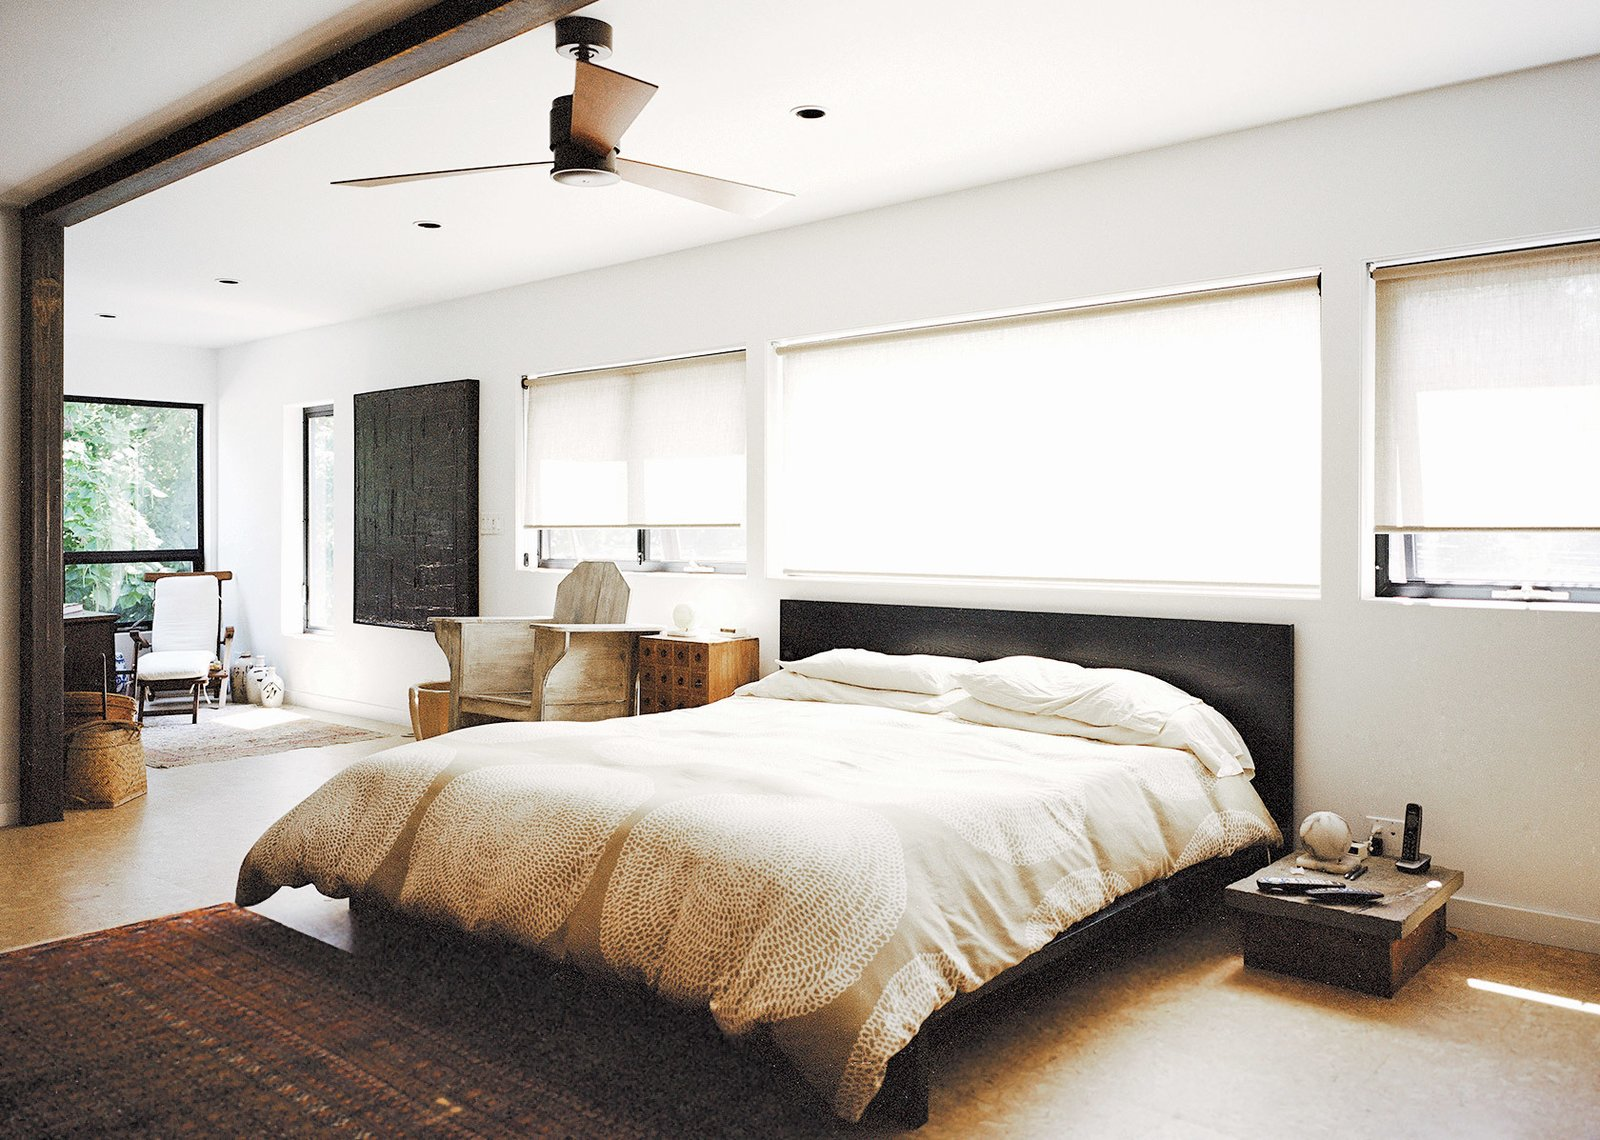 Bedroom and Bed In the master bedroom, a custom bed by Jason Micciche is outfitted with linens from Marimekko; the ceiling fan is by Fanimation.  Photo 7 of 12 in A Shipping Container Home in Pennsylvania Embraces Its Rugged Industrial Origins